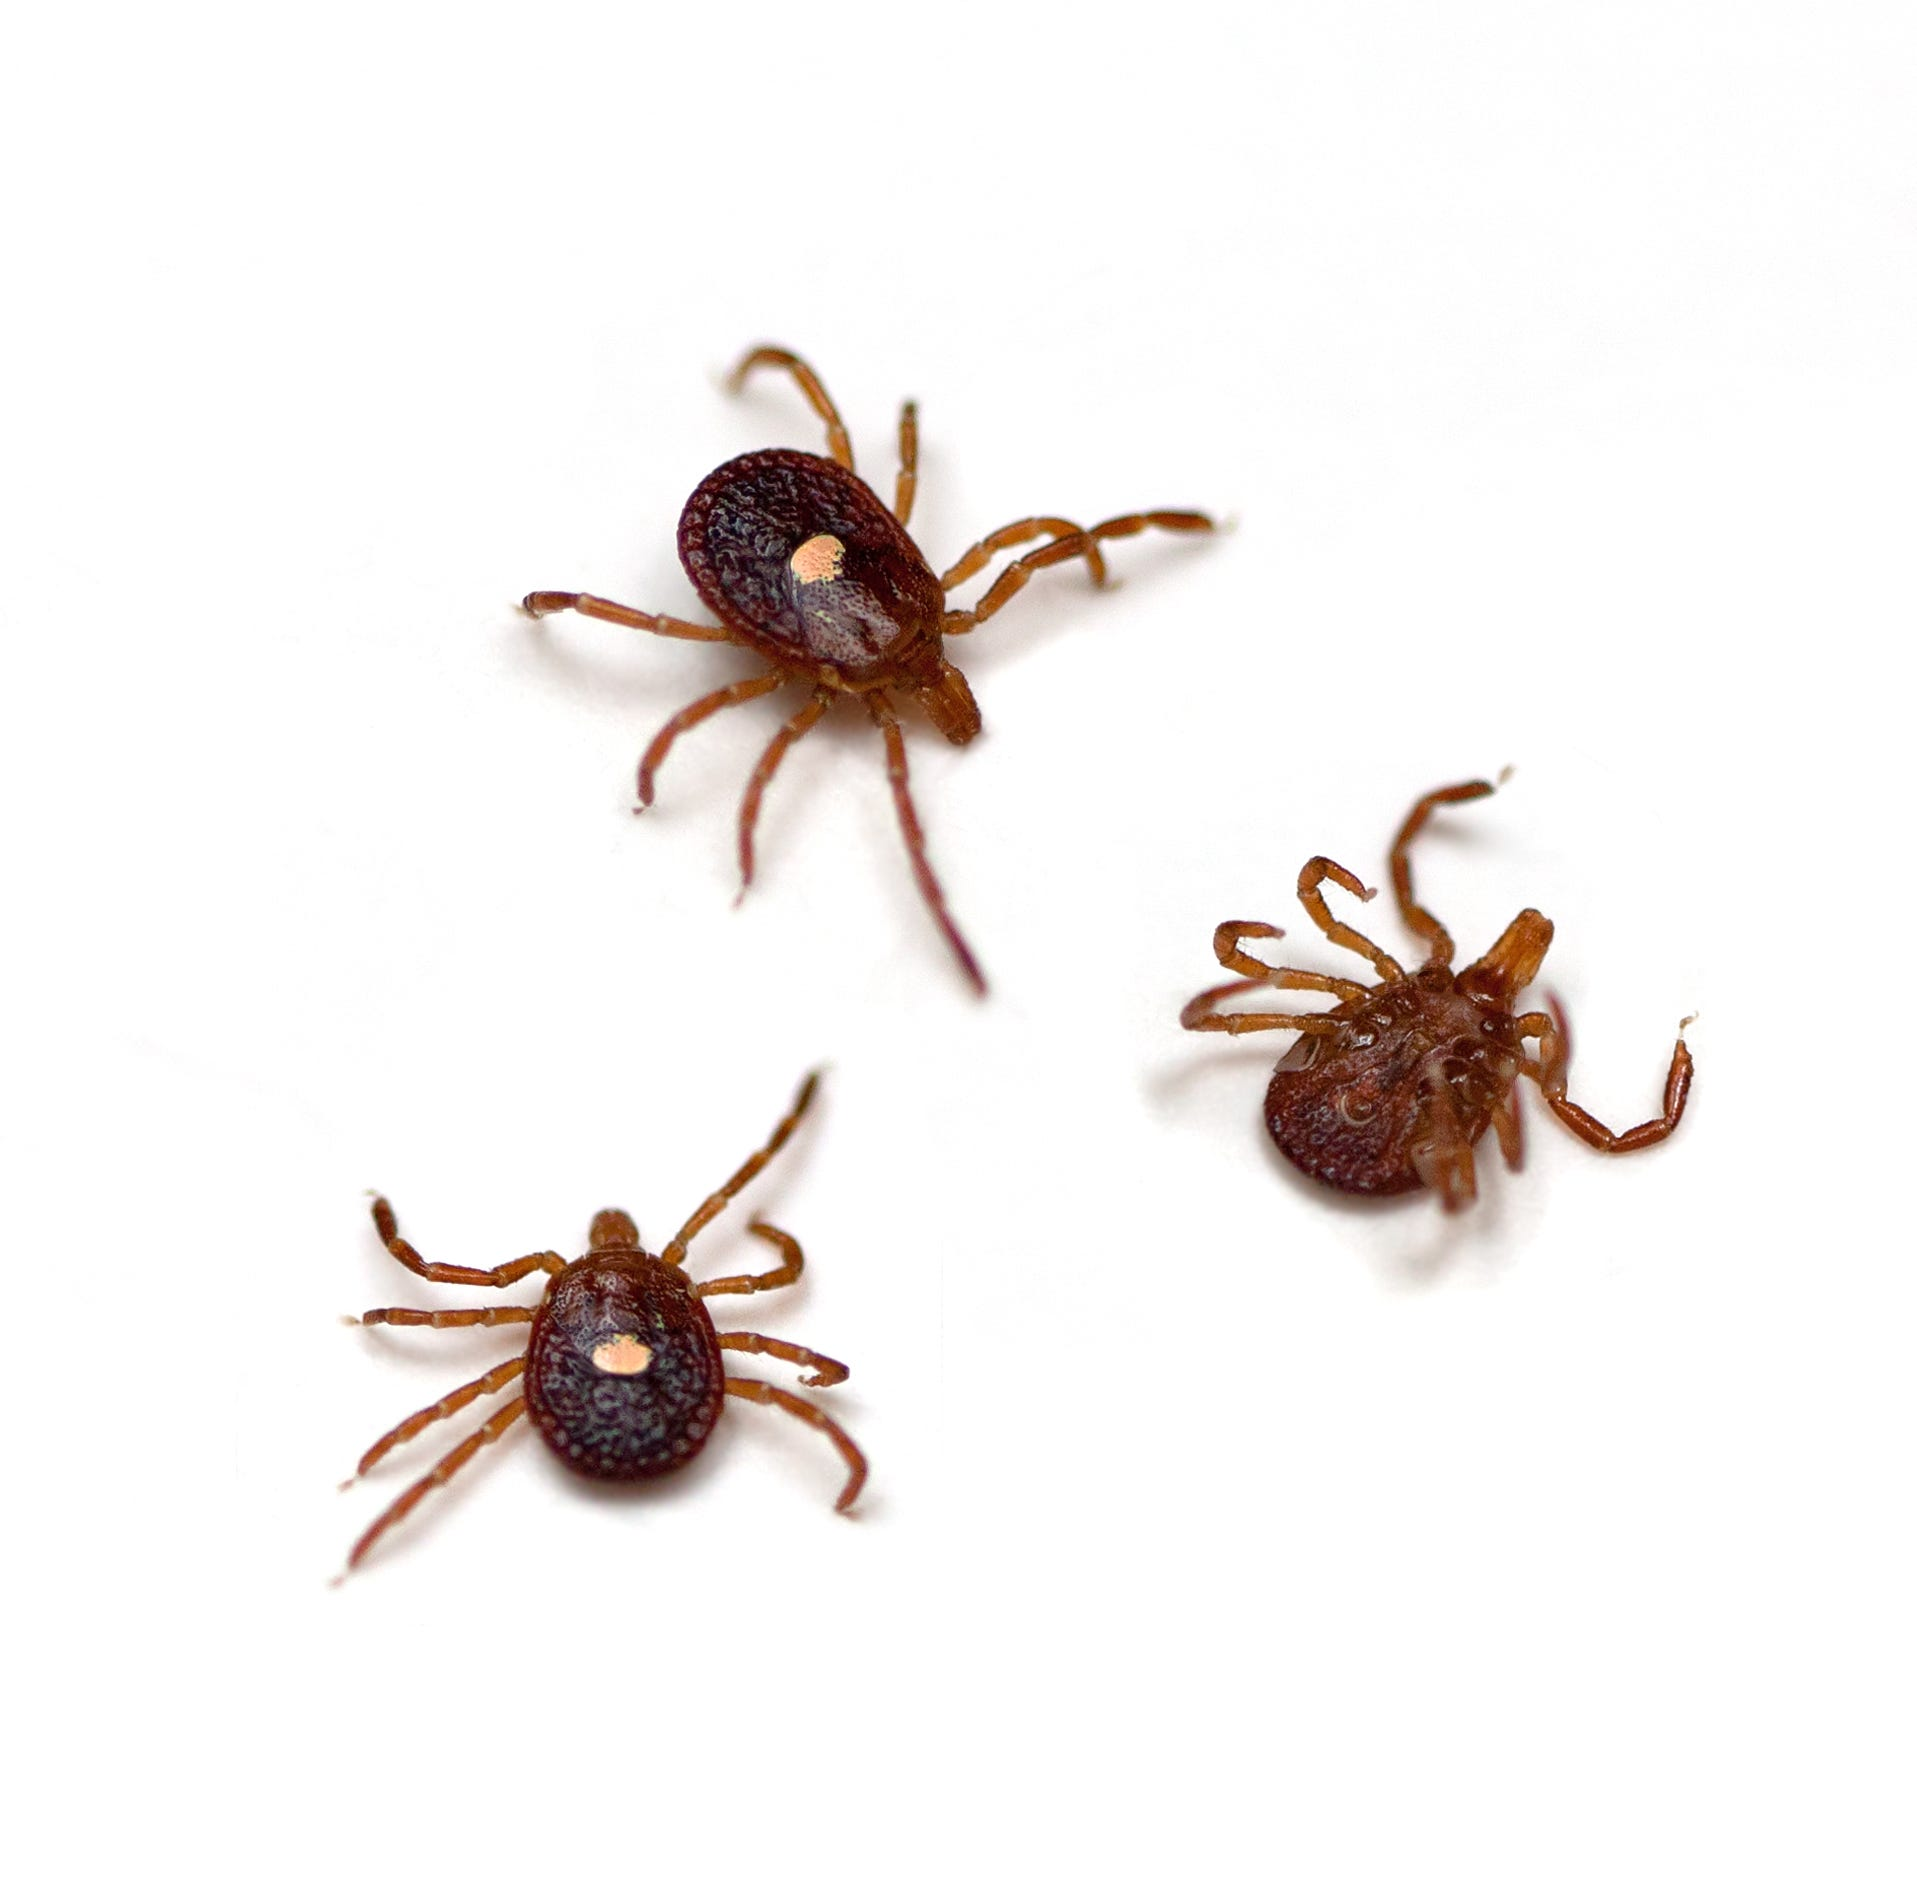 RIdeout: Watch out for ticks